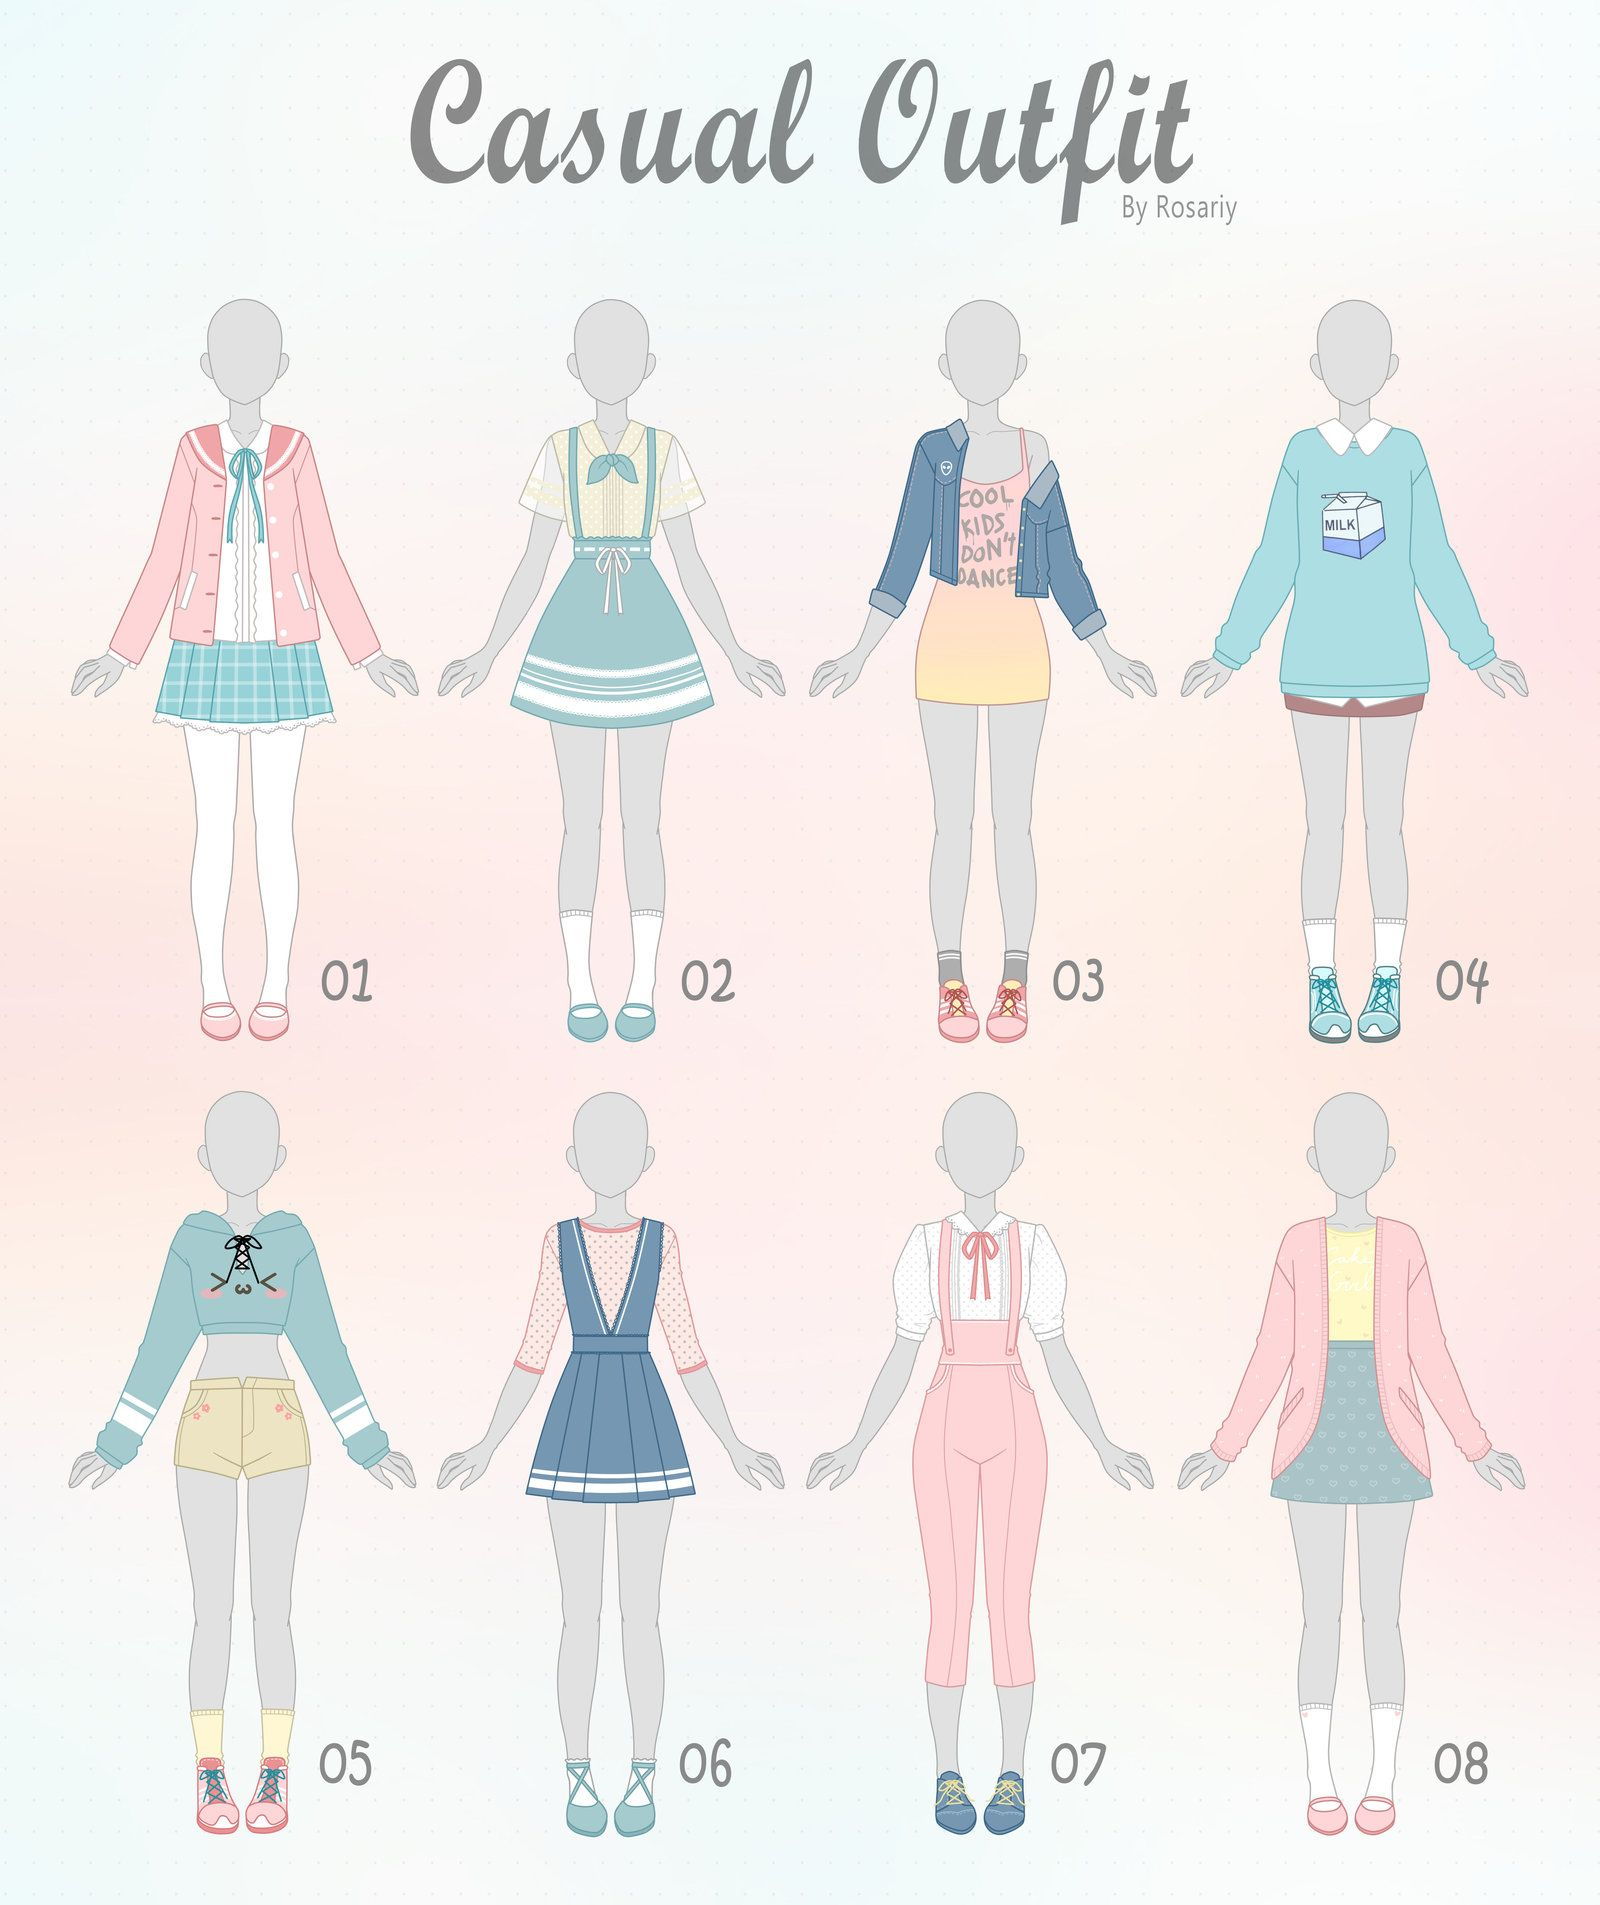 Open 1 8 Casual Outfit Adopts 23 By Rosariy Fashion Design Drawings Fashion Design Sketches Casual Art